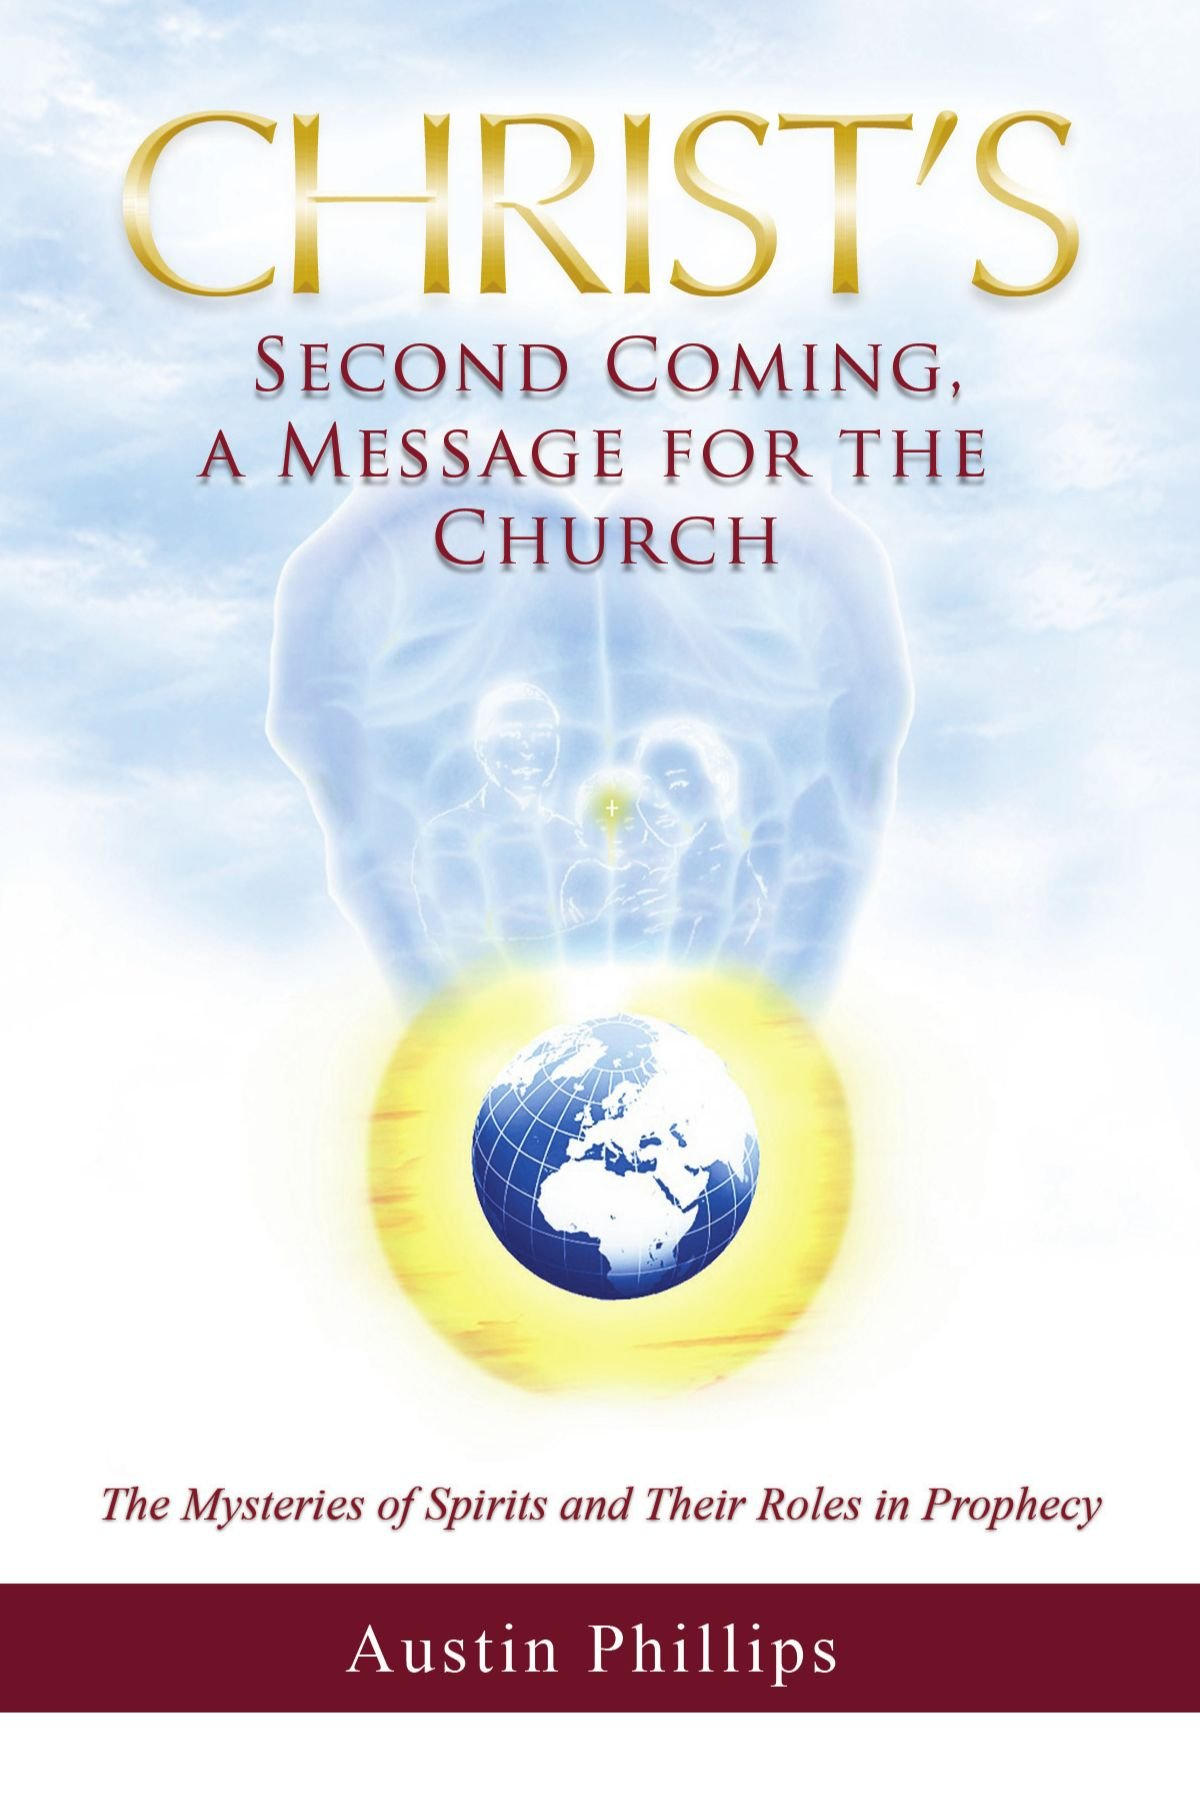 Christ Second Coming, a Message for the Church: The Mysteries of Spirits and Their Roles in Prophecy pdf